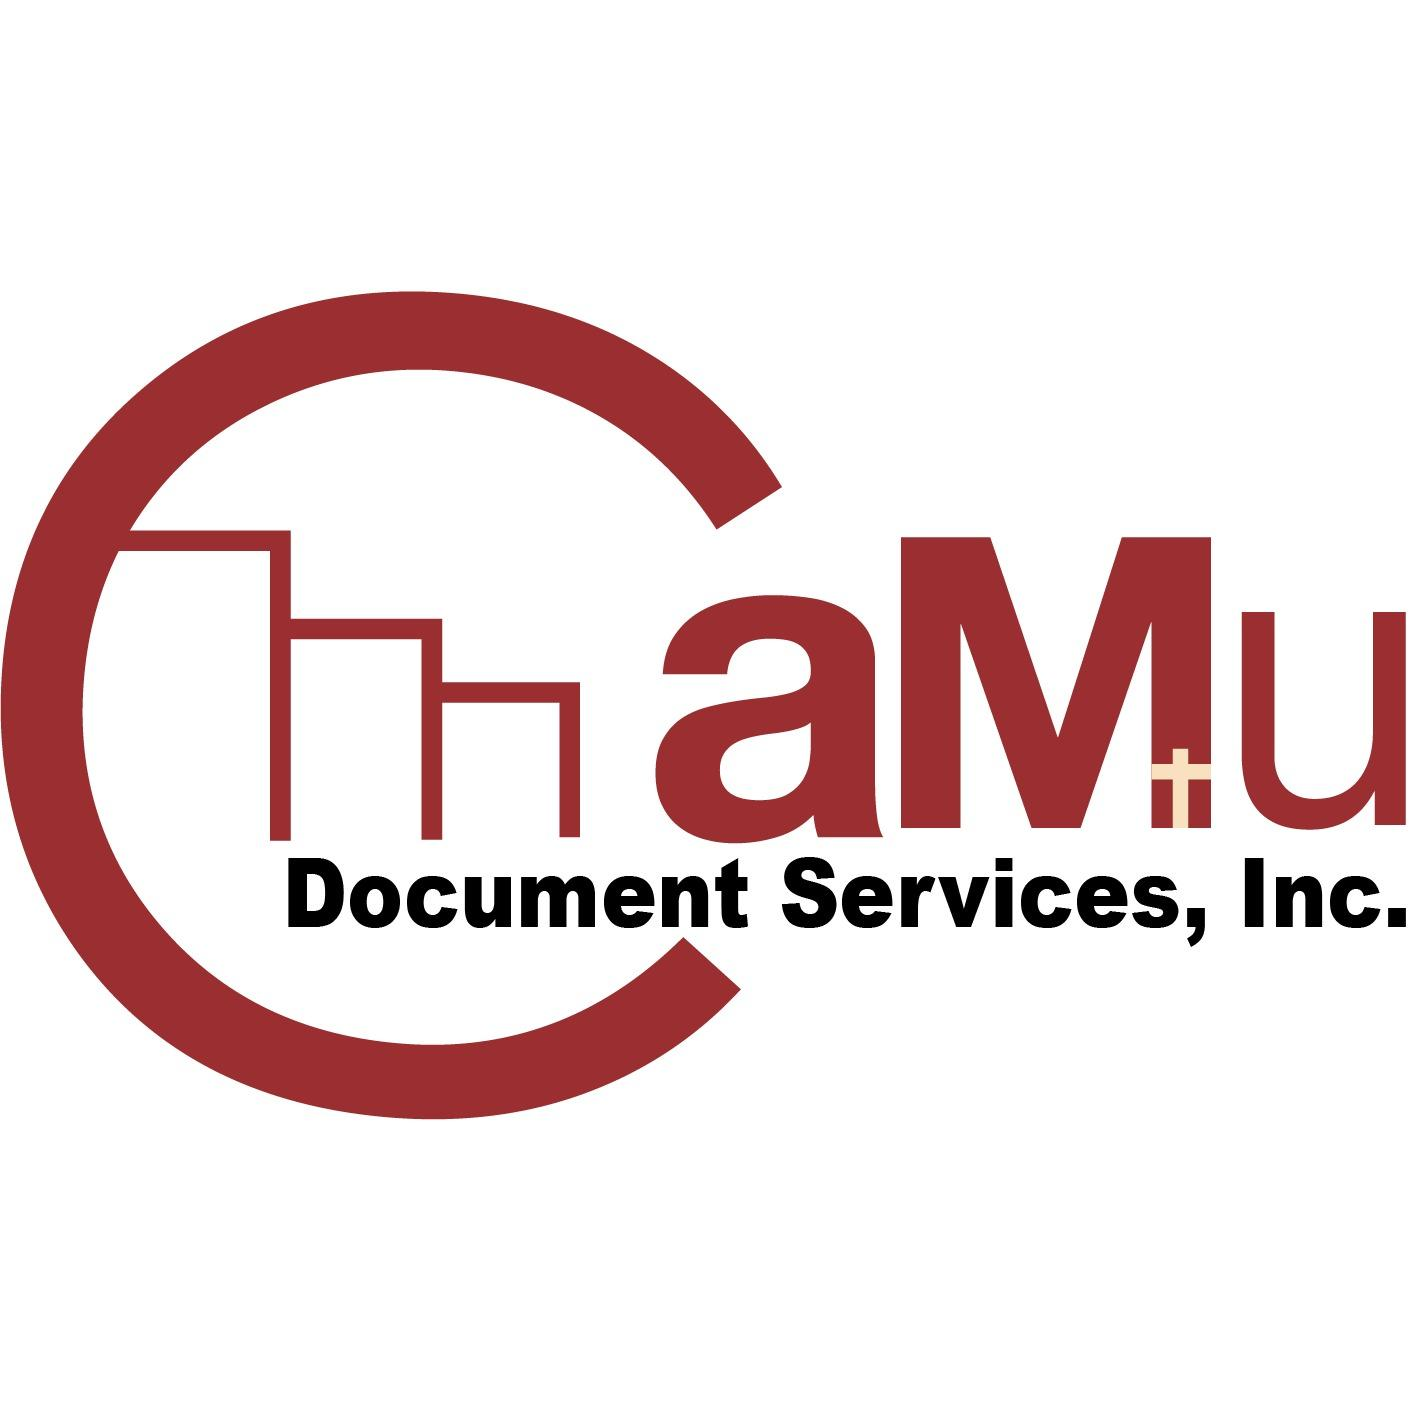 CaMu Document Services, Inc.